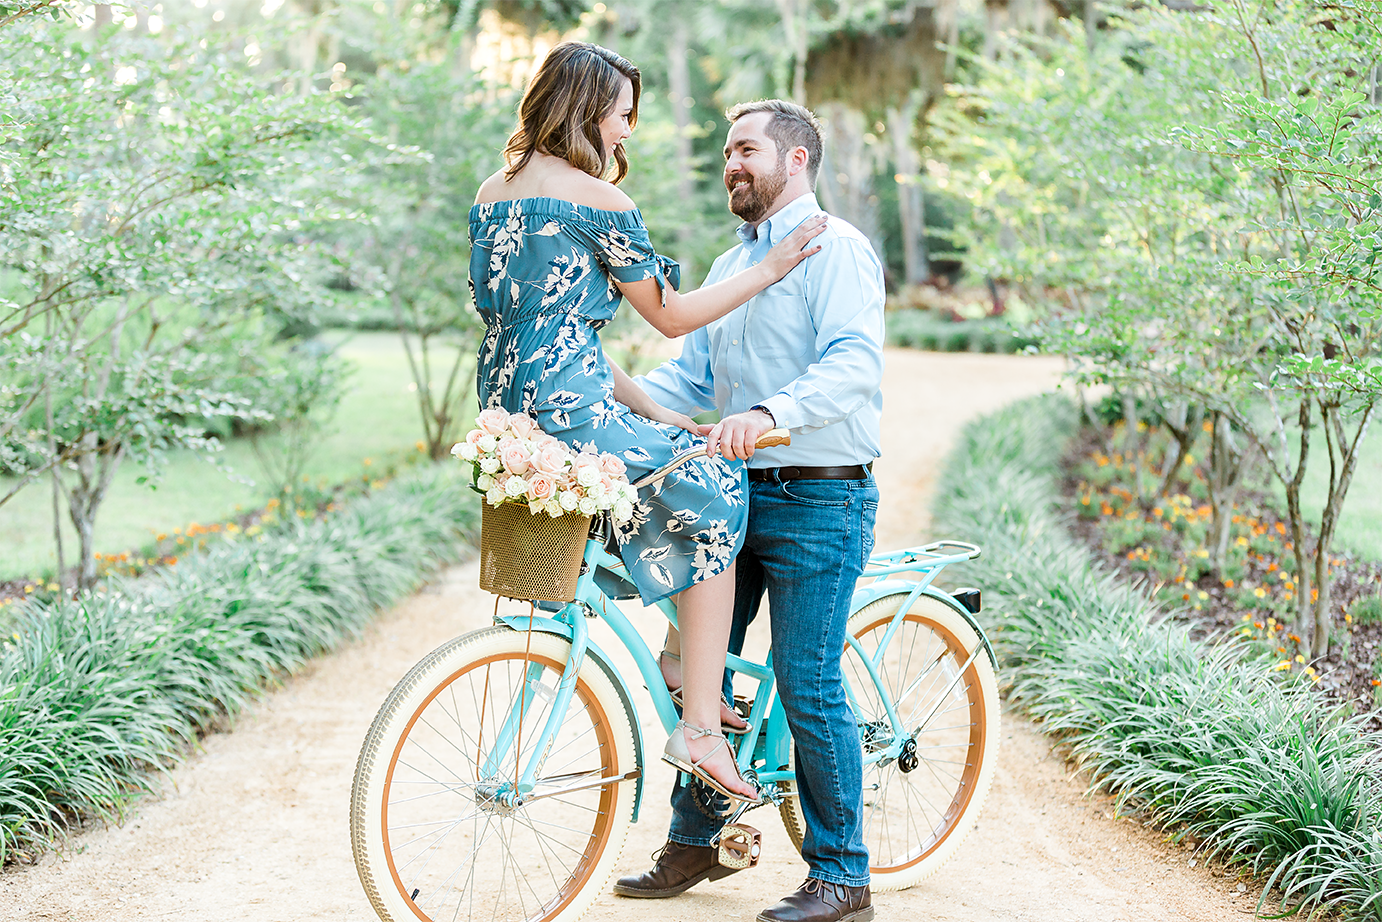 engagement pictures with beach cruiser bike and roses